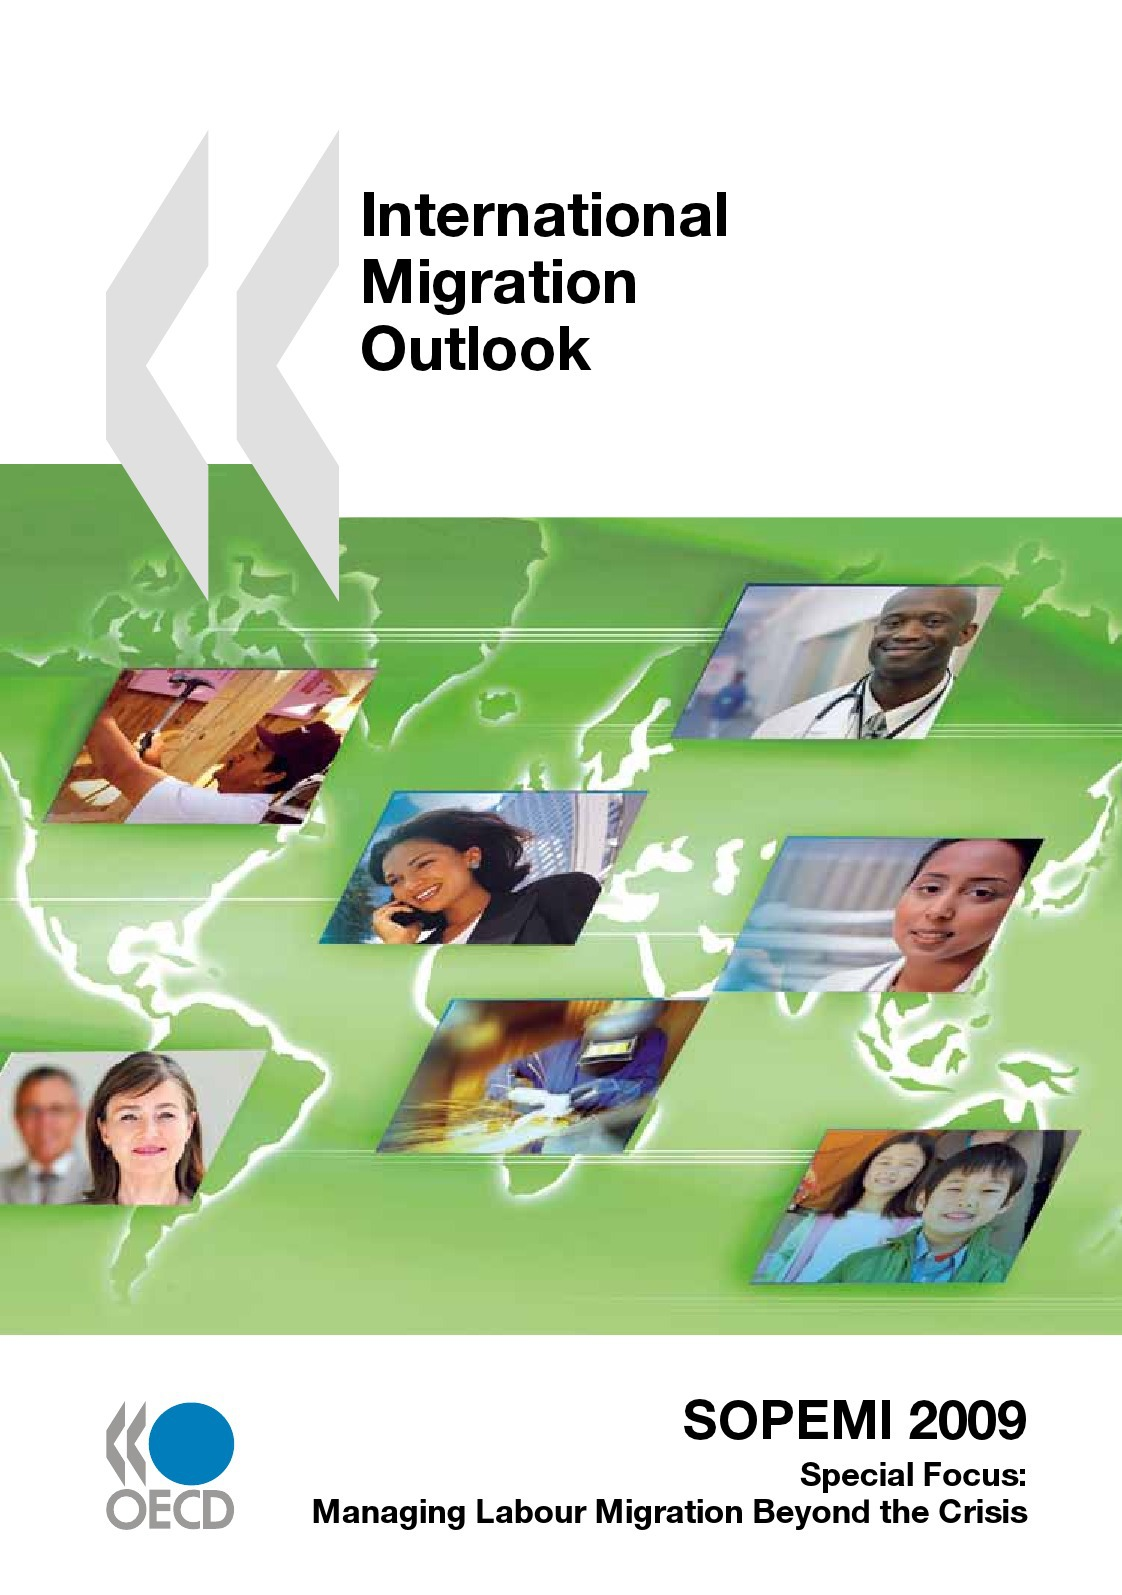 Collective International Migration Outlook 2009